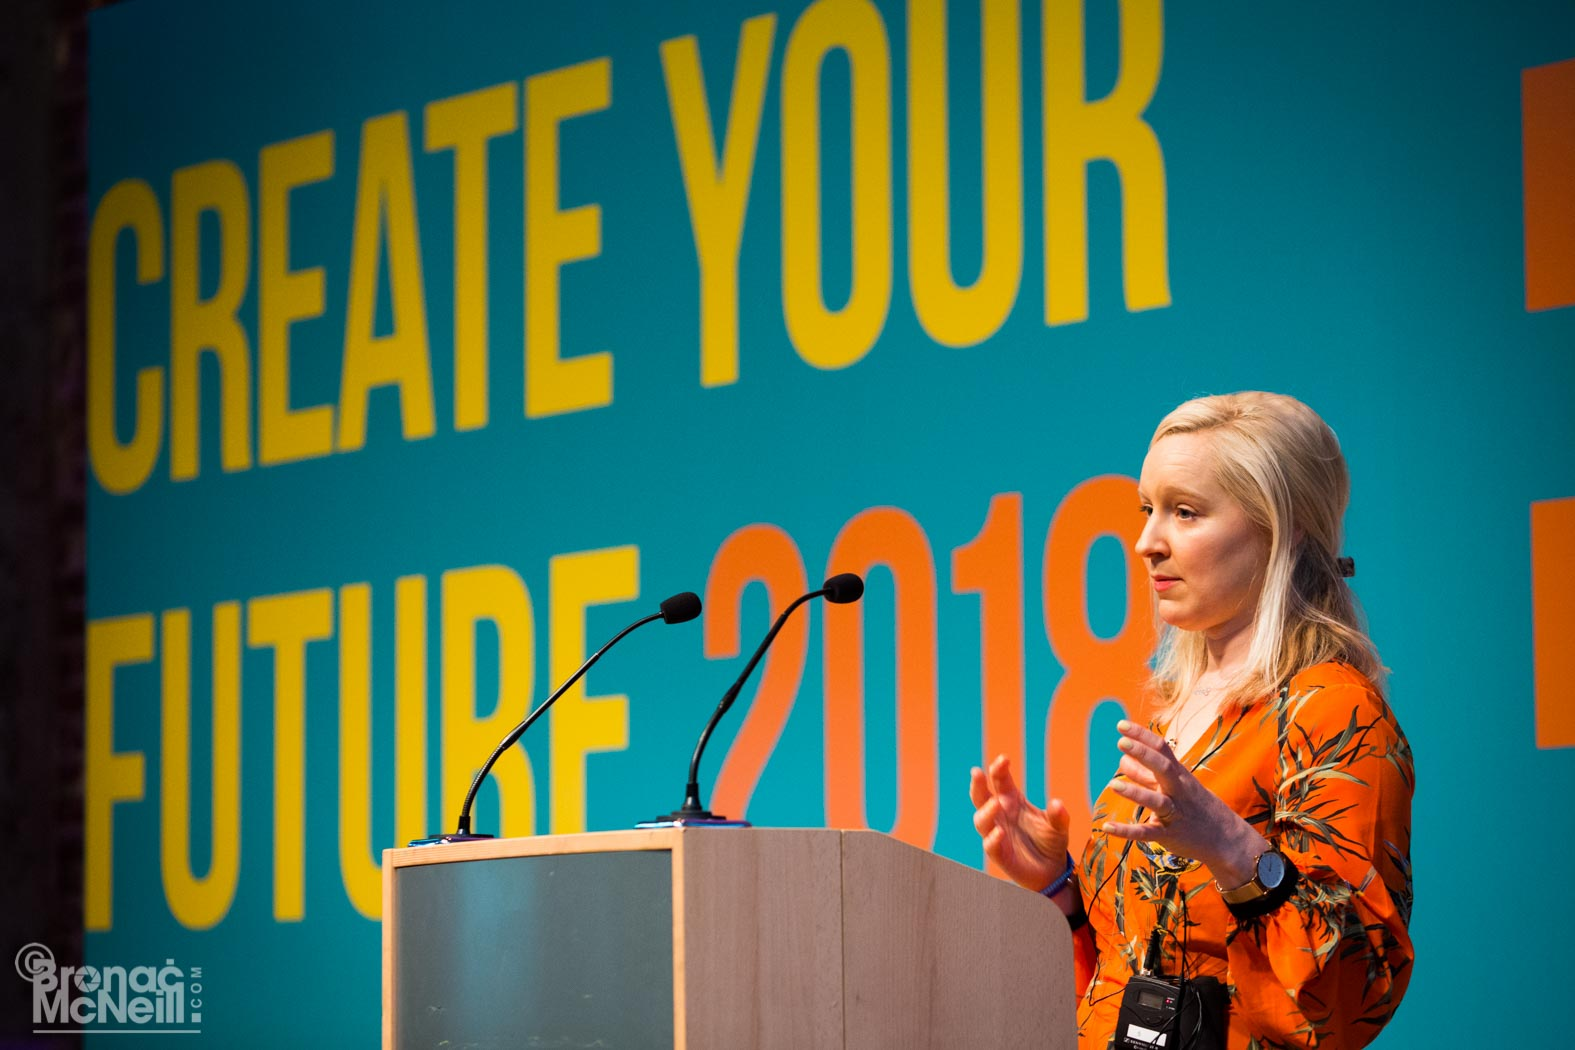 Speaking at the Creative Equals conference